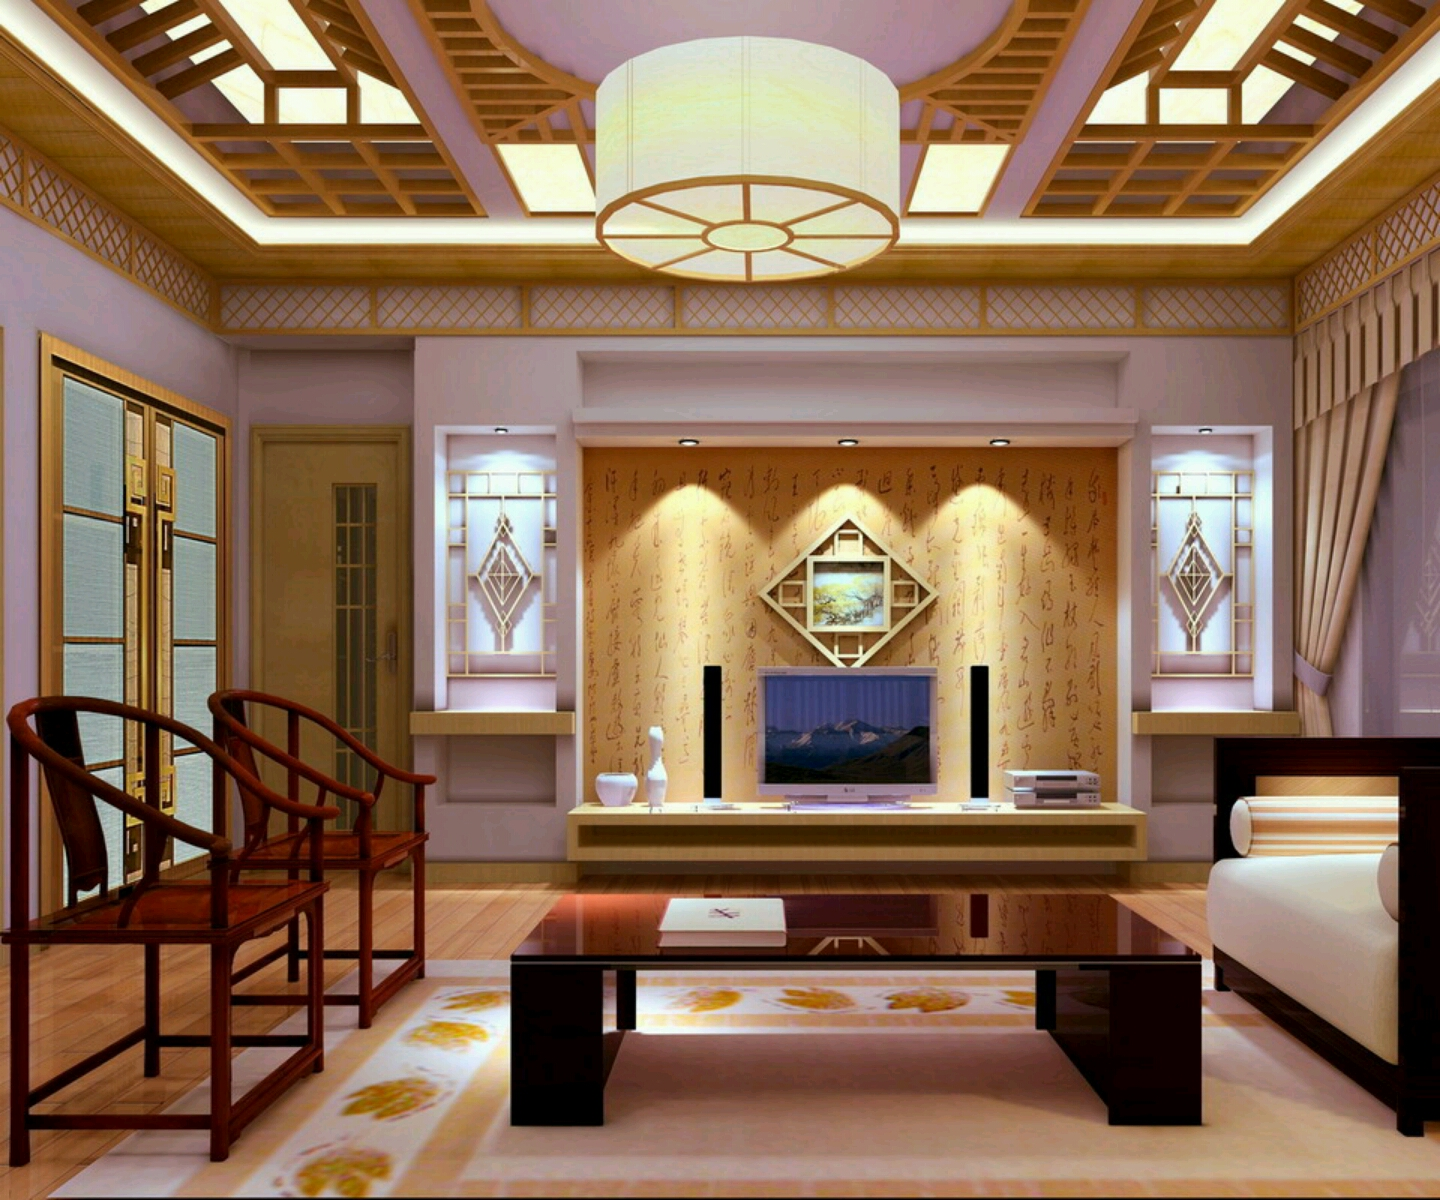 New home designs latest homes interior designs studyrooms for Inside house ideas